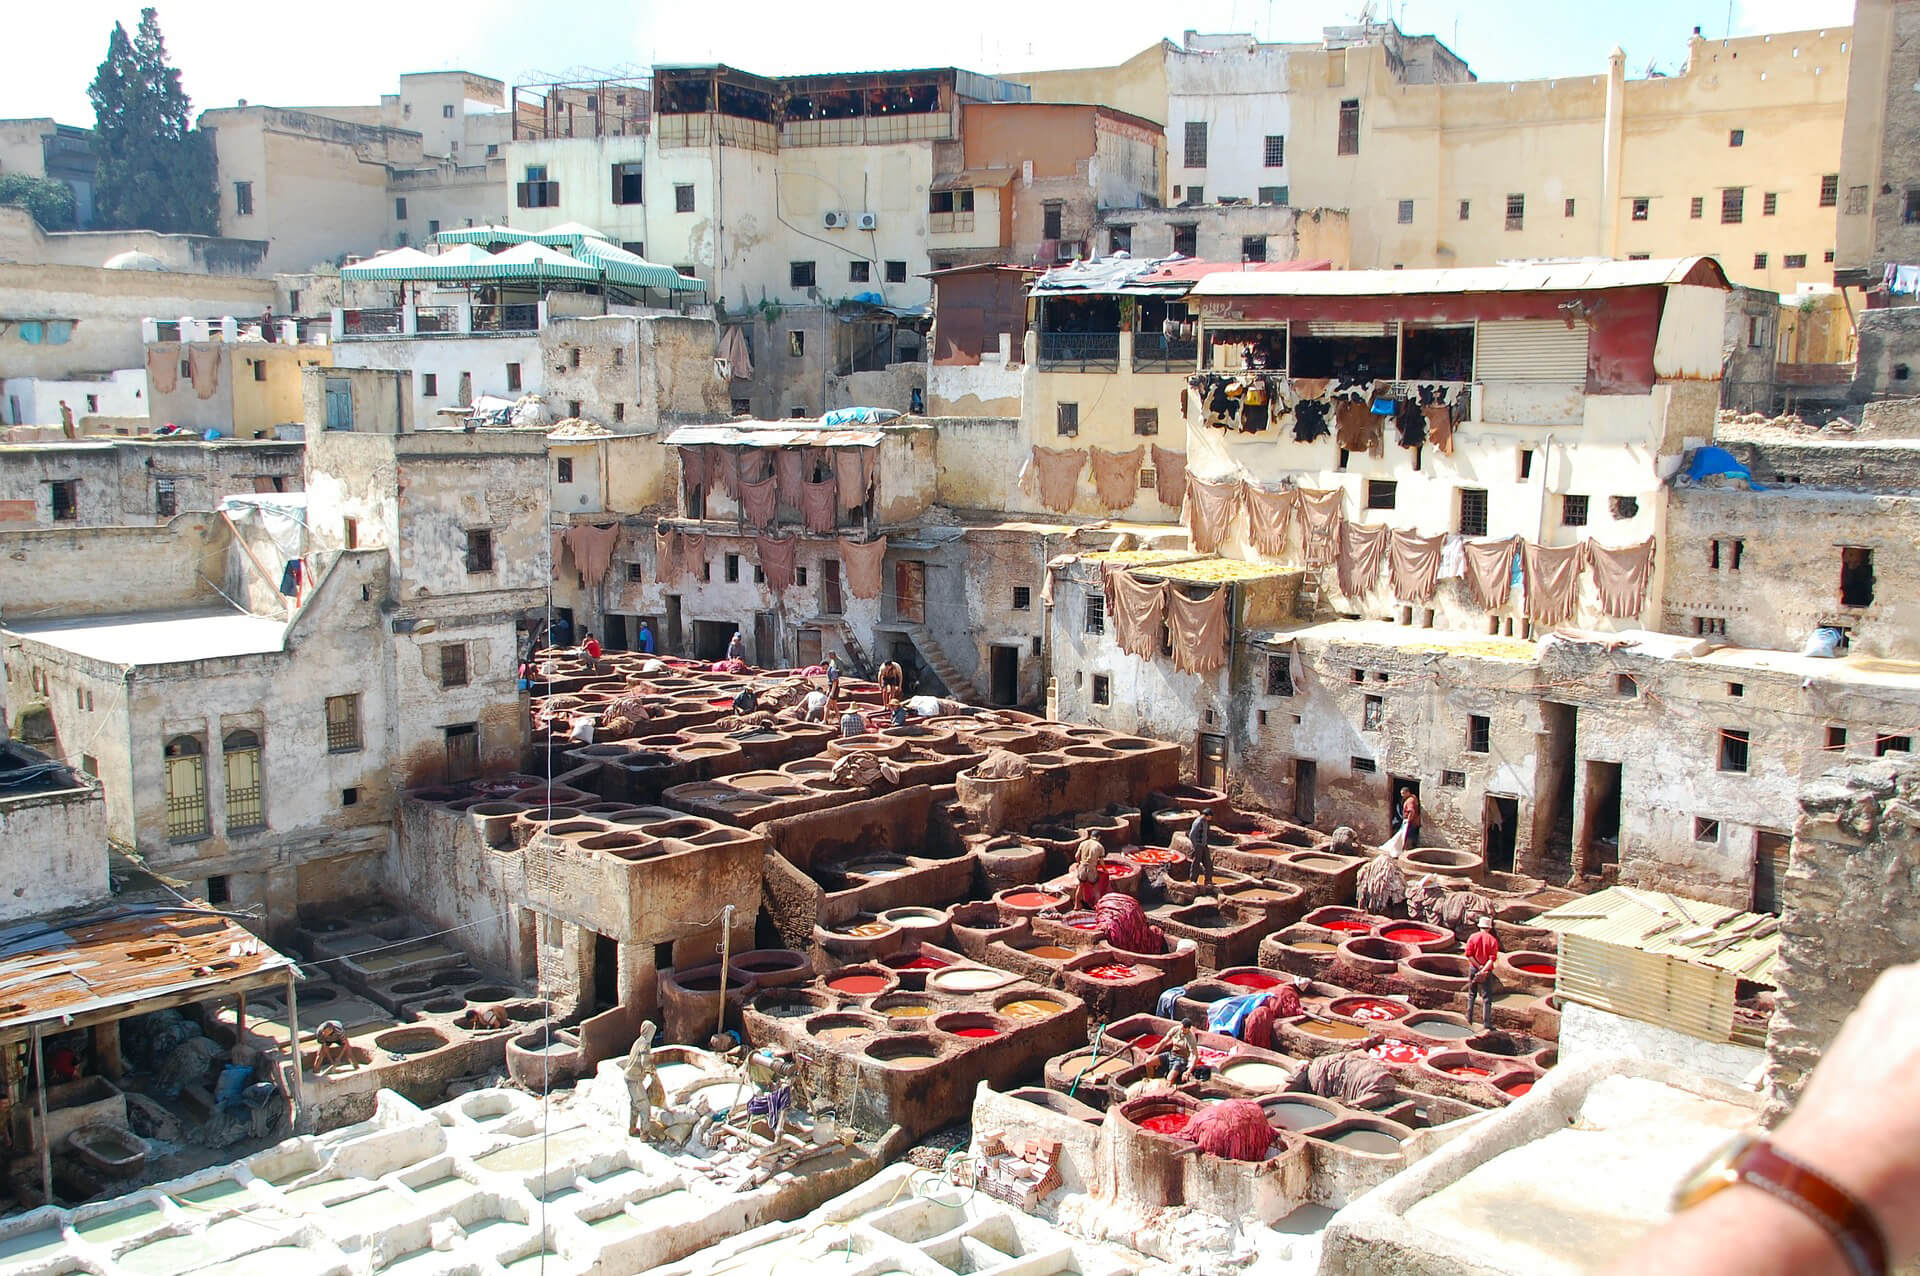 Sahara Desert Tour - What To Do and See in Fez - Chouara Tannery